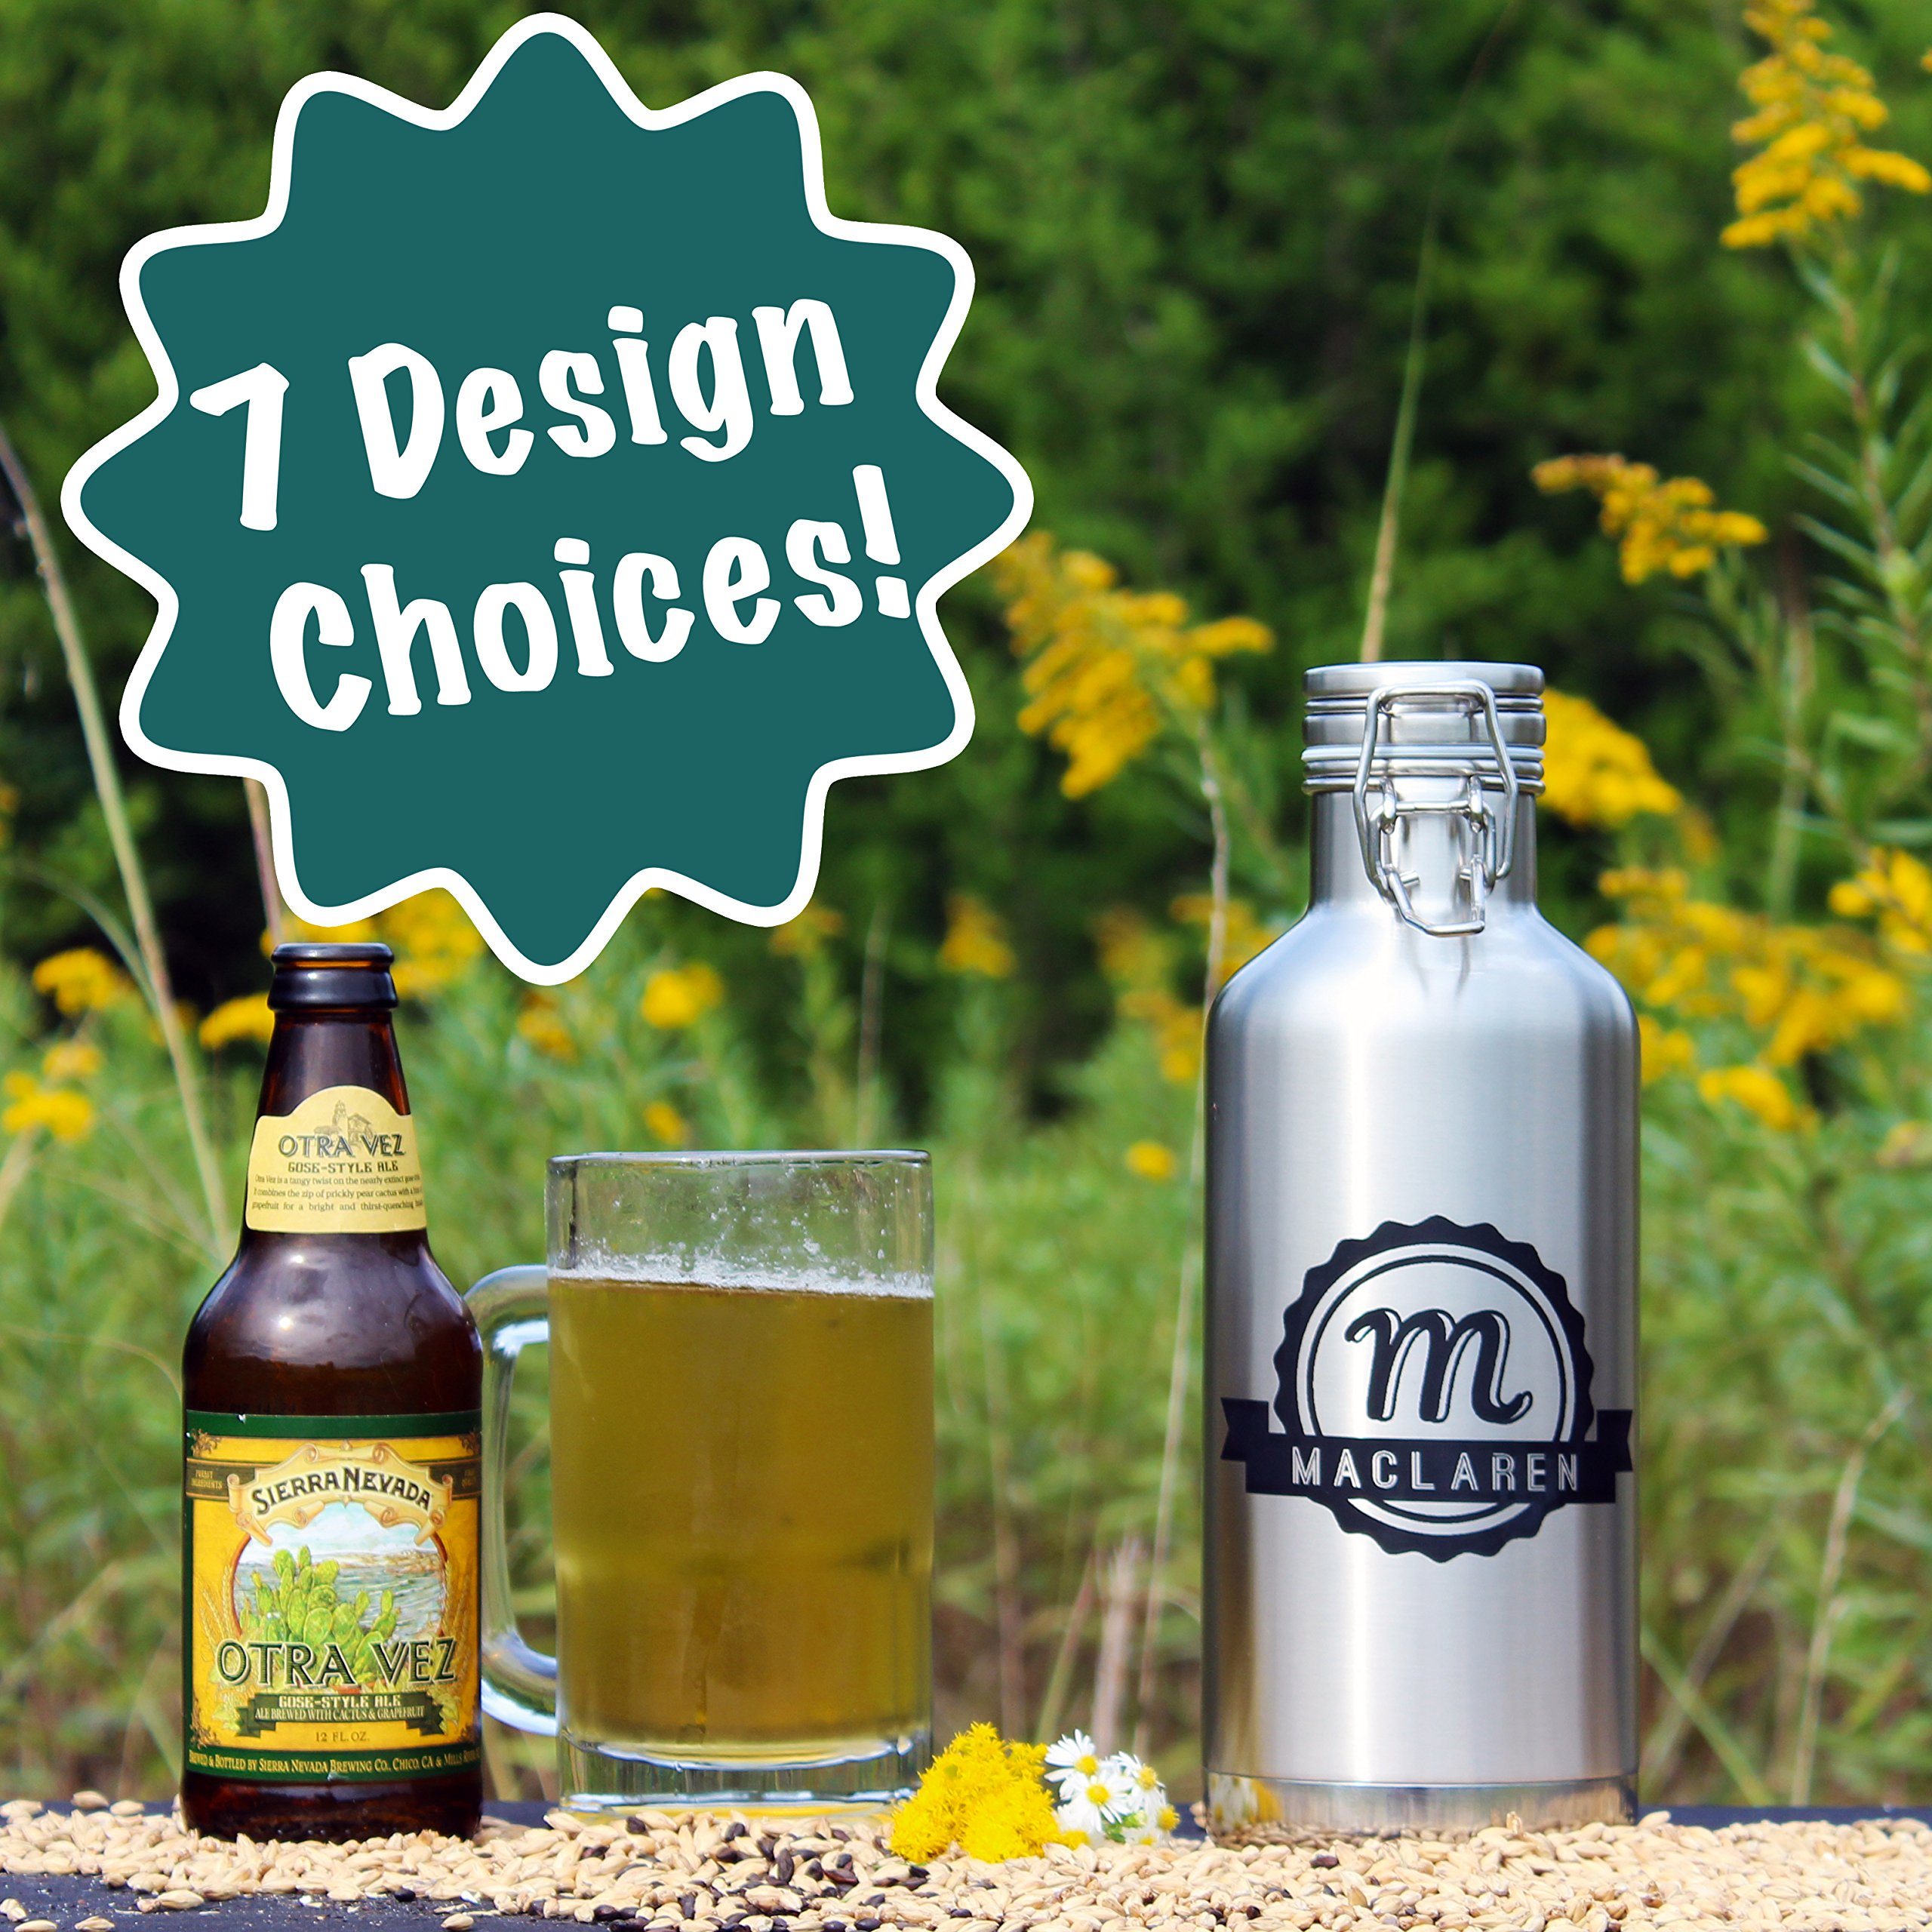 Personalized Etched Stainless Steel Insulated 32oz Beer Growler